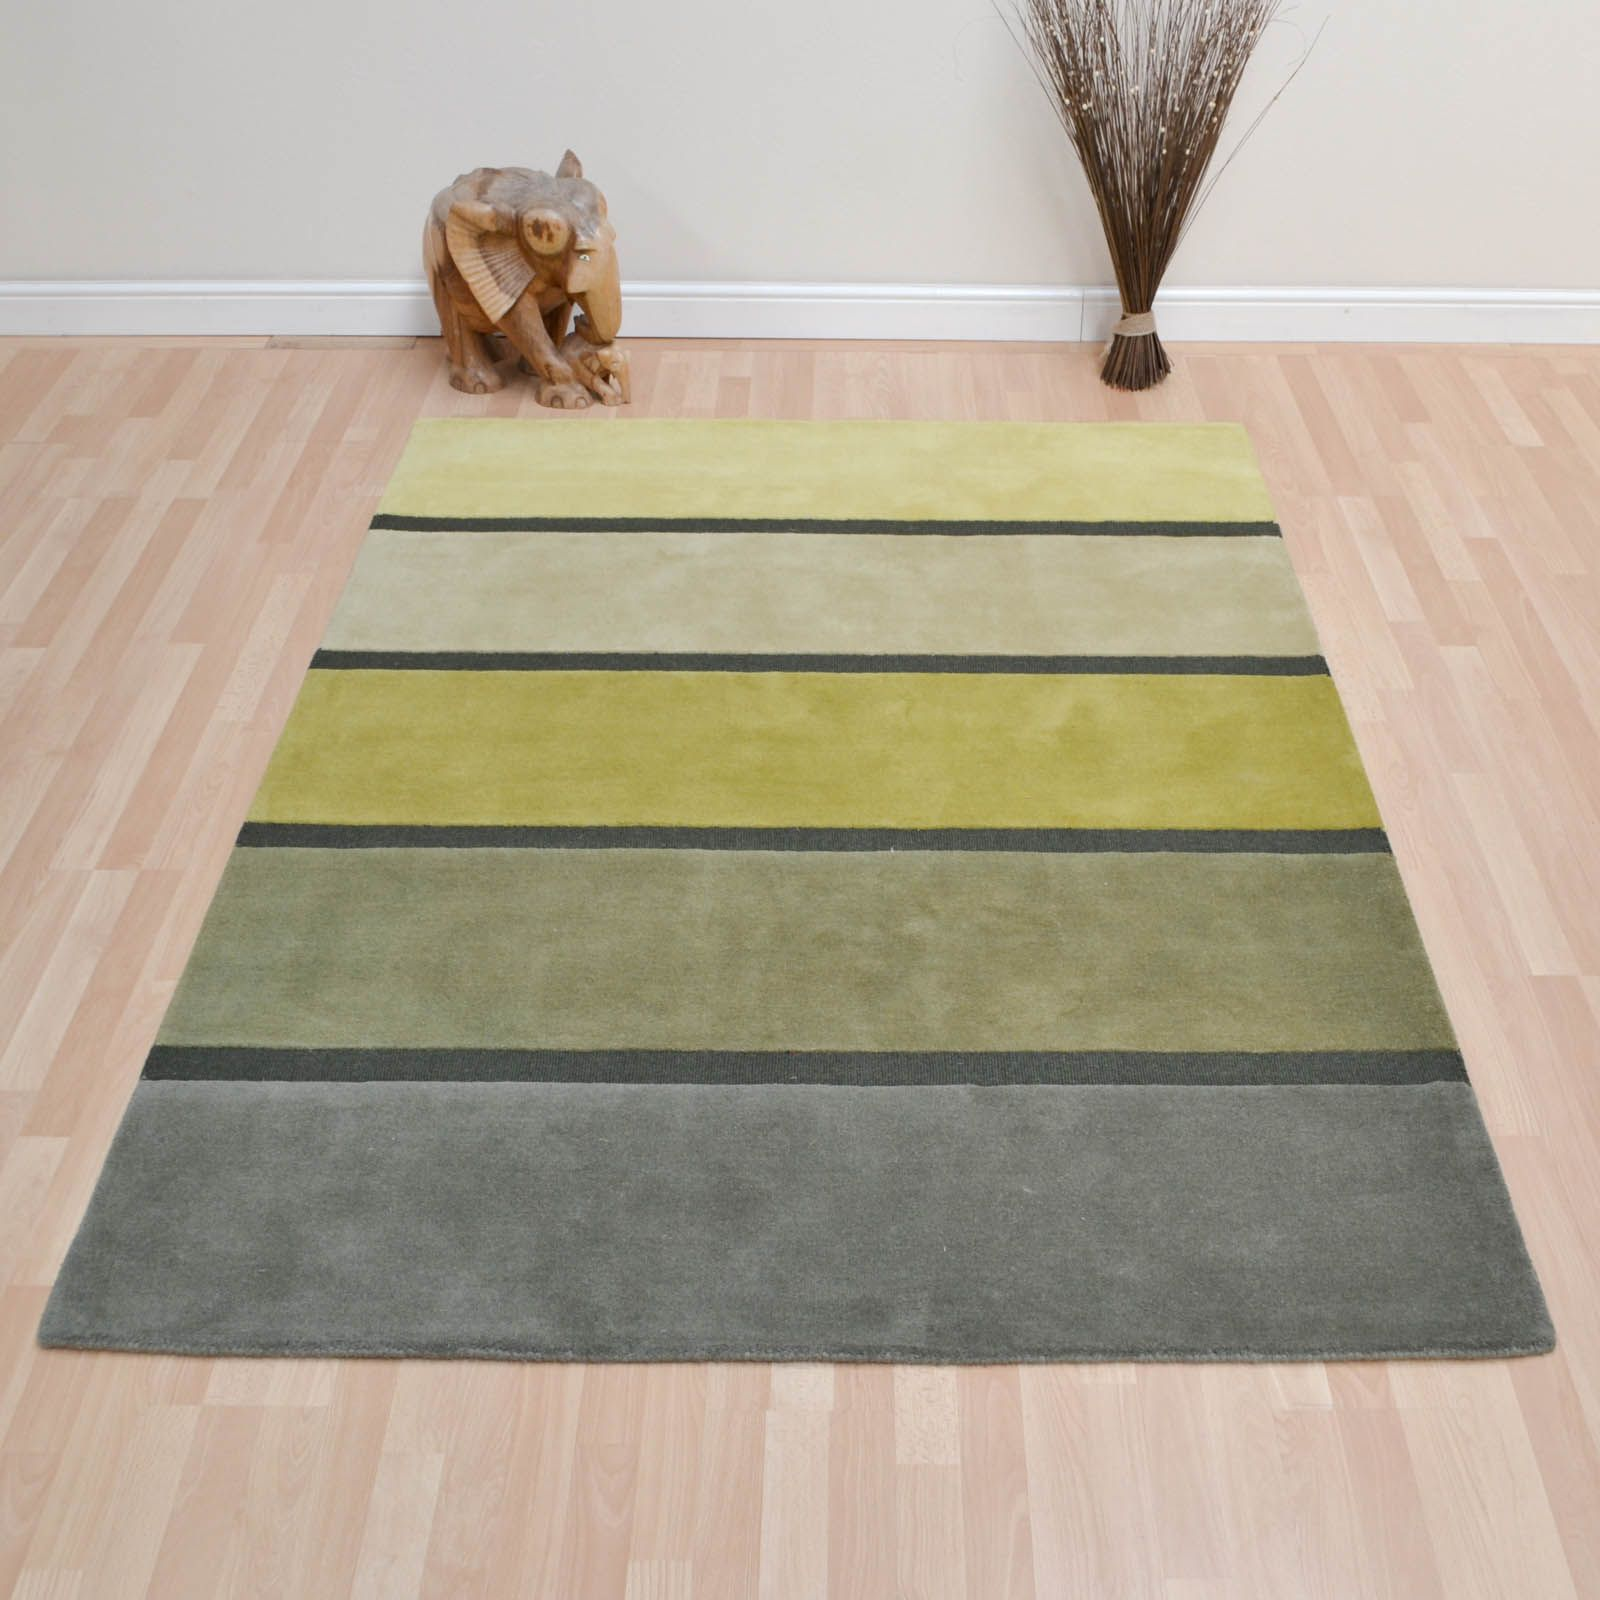 Luna Stairs 91707 Green Wool Rugs by Brink & Campman